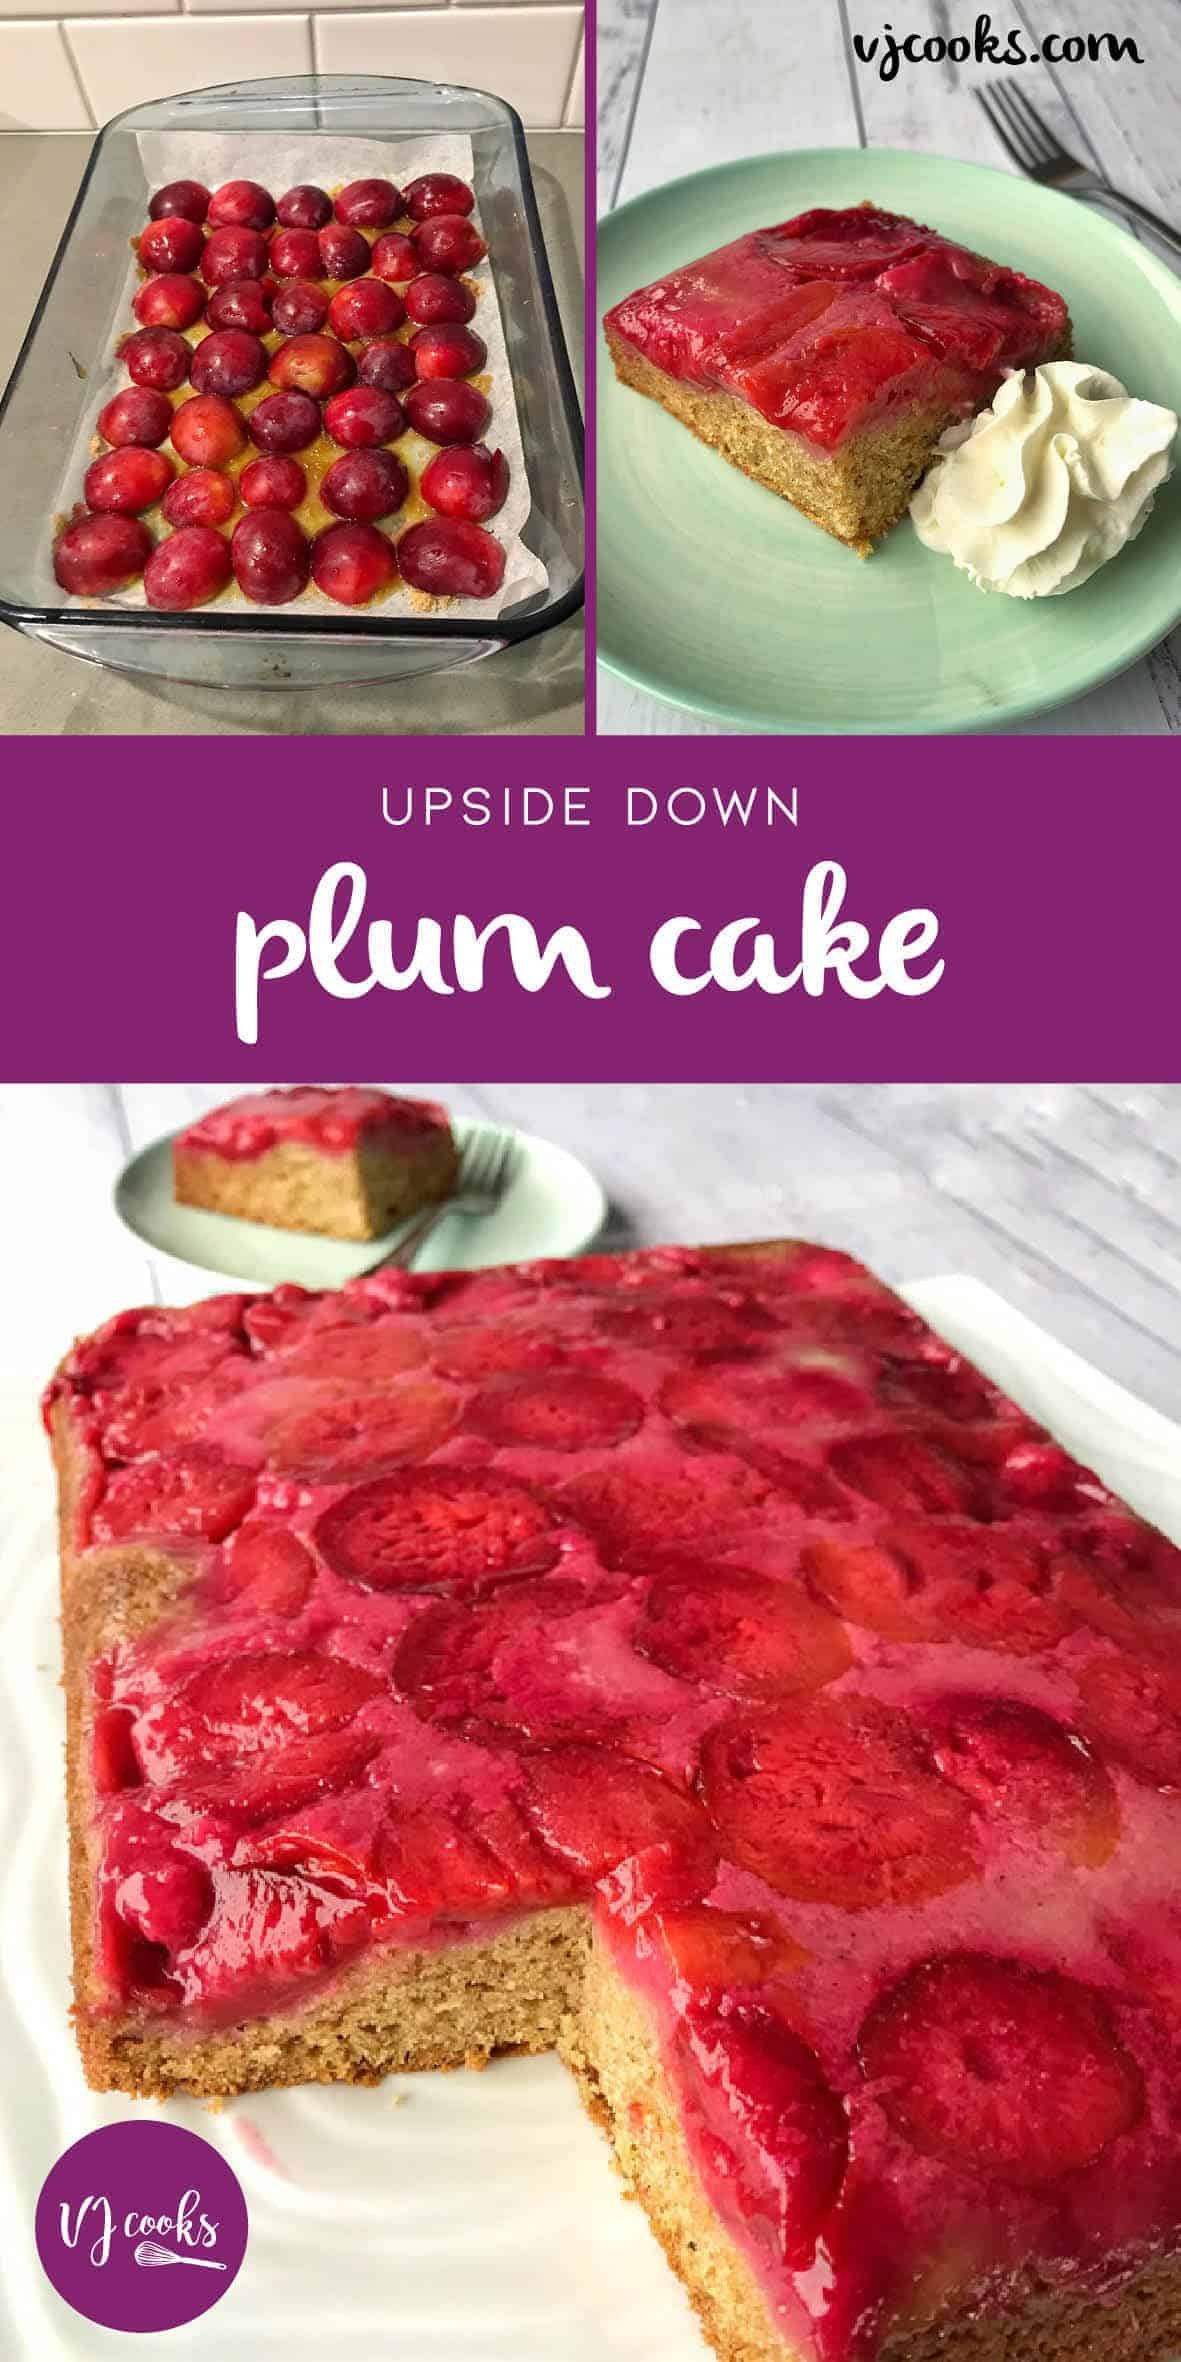 Upside down plum cake easy recipe by VJ cooks